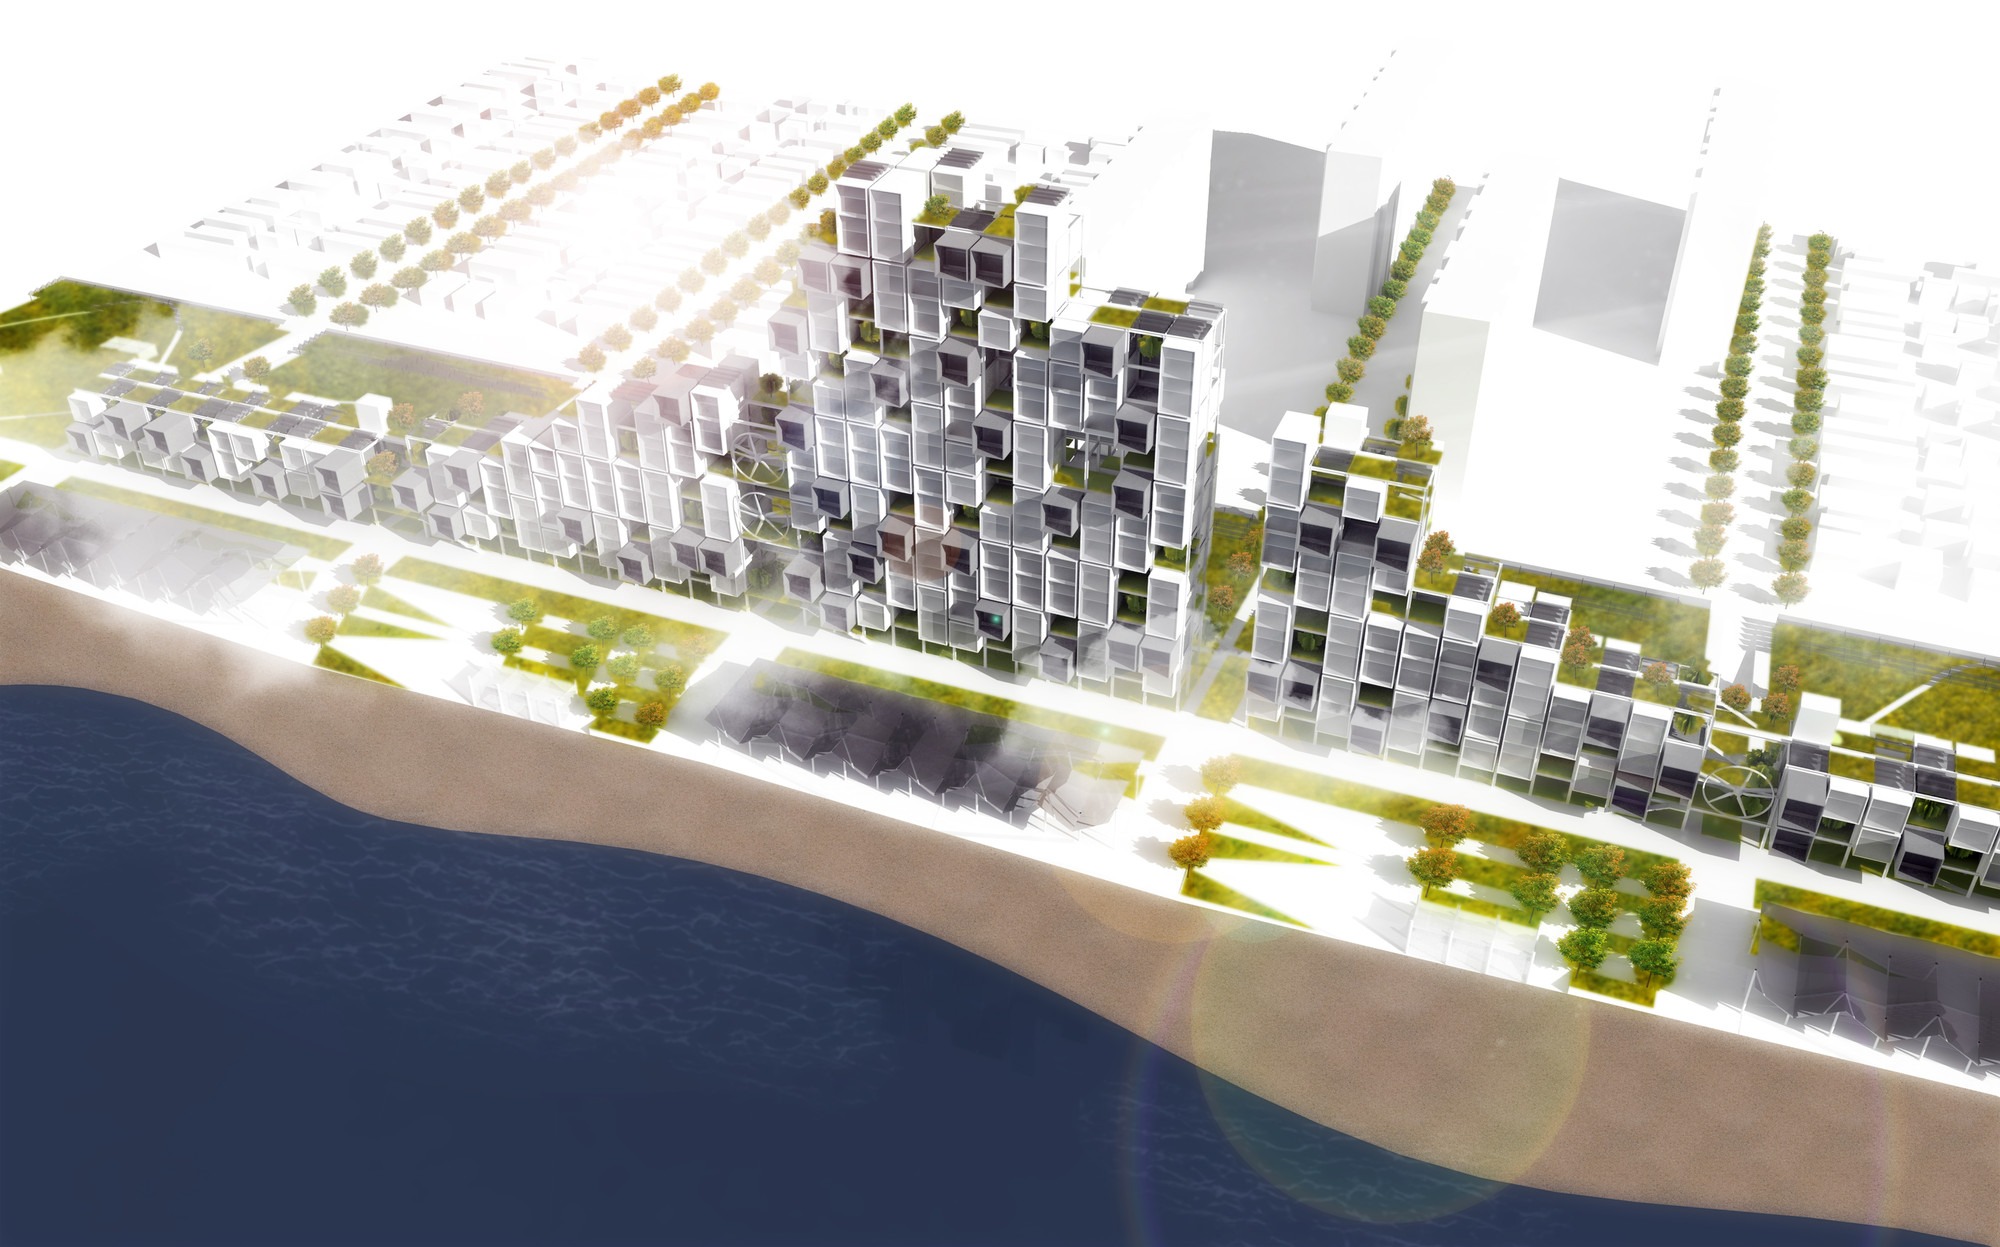 28+: MOMA PS1 Rockaway Call for Ideas Winning Proposal / Michael Sorkin Studio, Courtesy of Michael Sorkin Studio